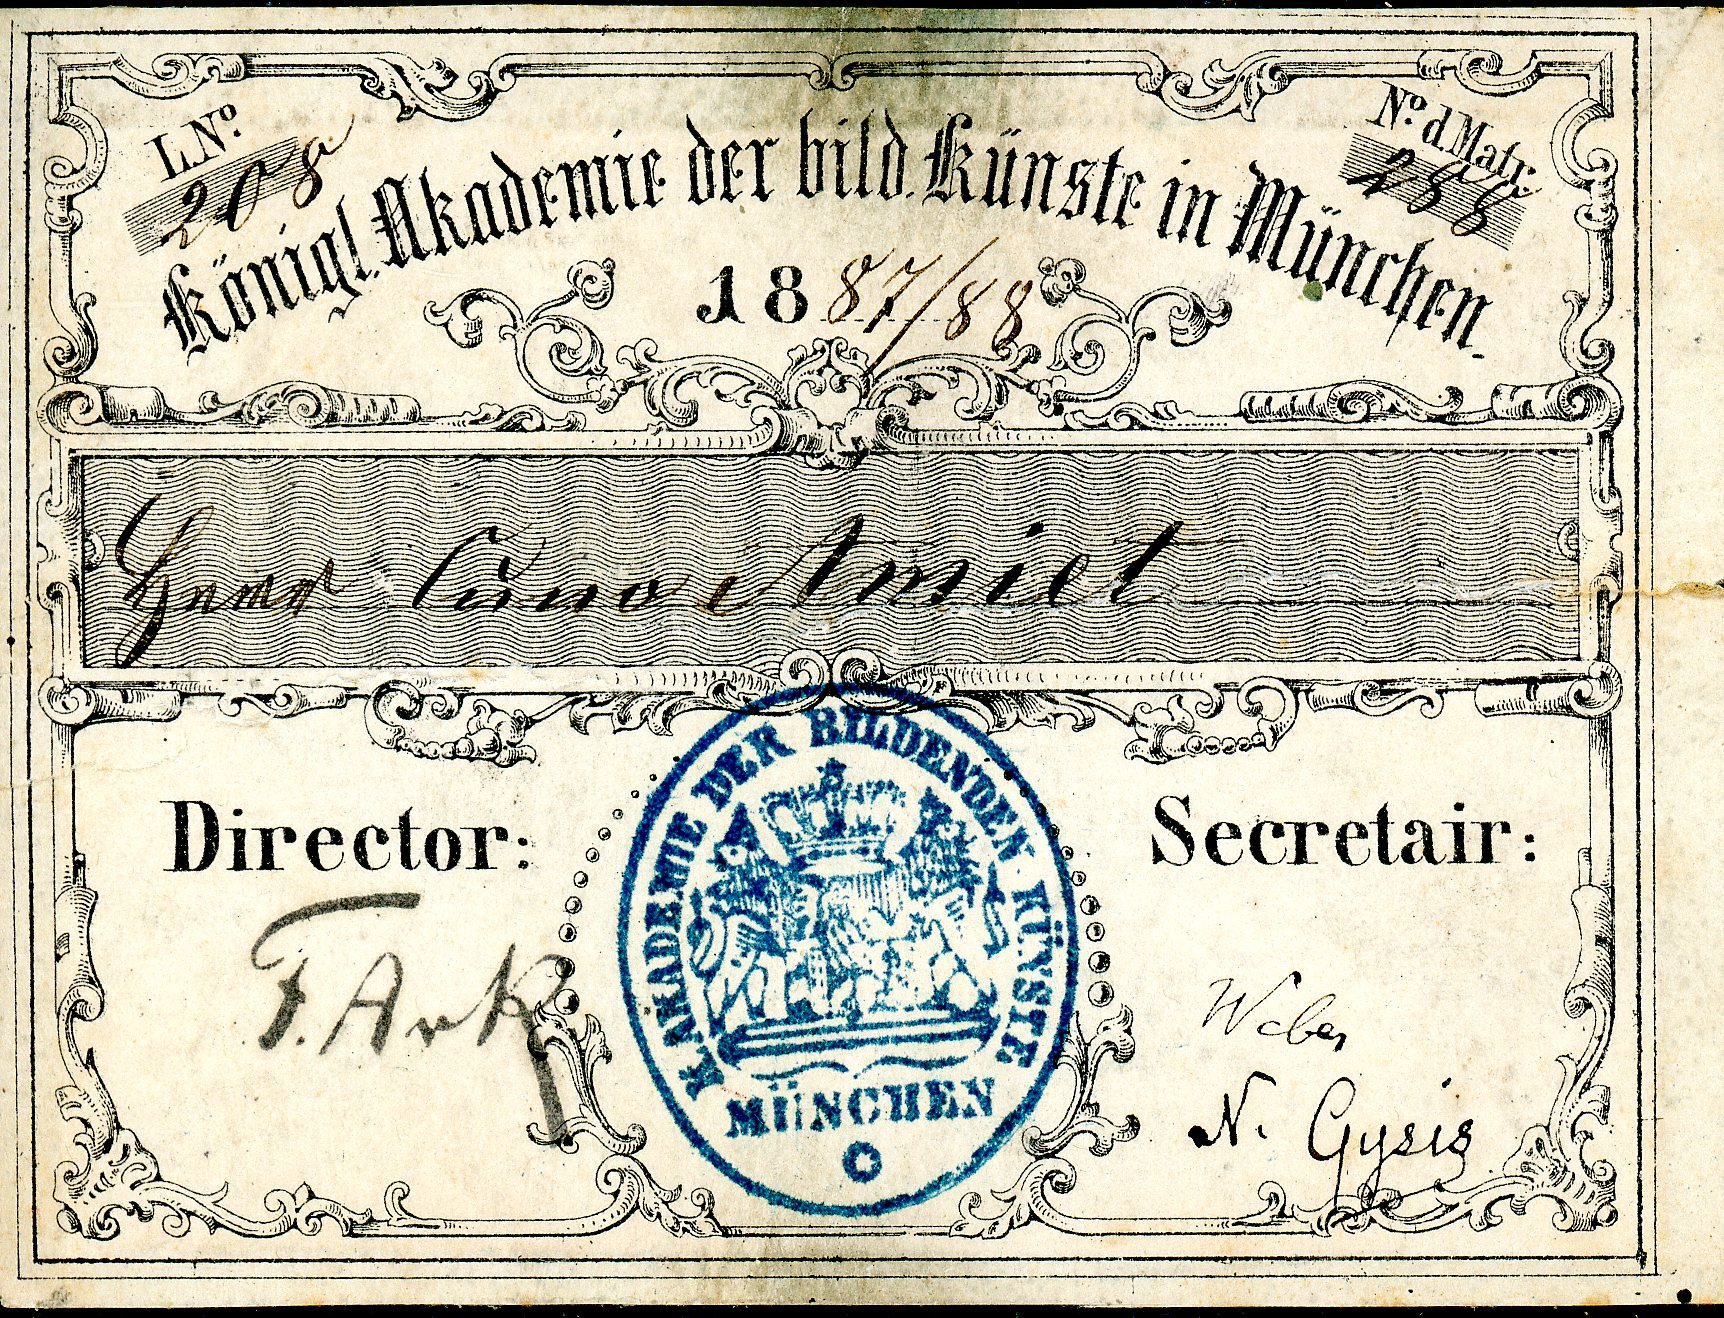 Amiet's student pass from the Academy of Fine Arts in Munich, 1877/78